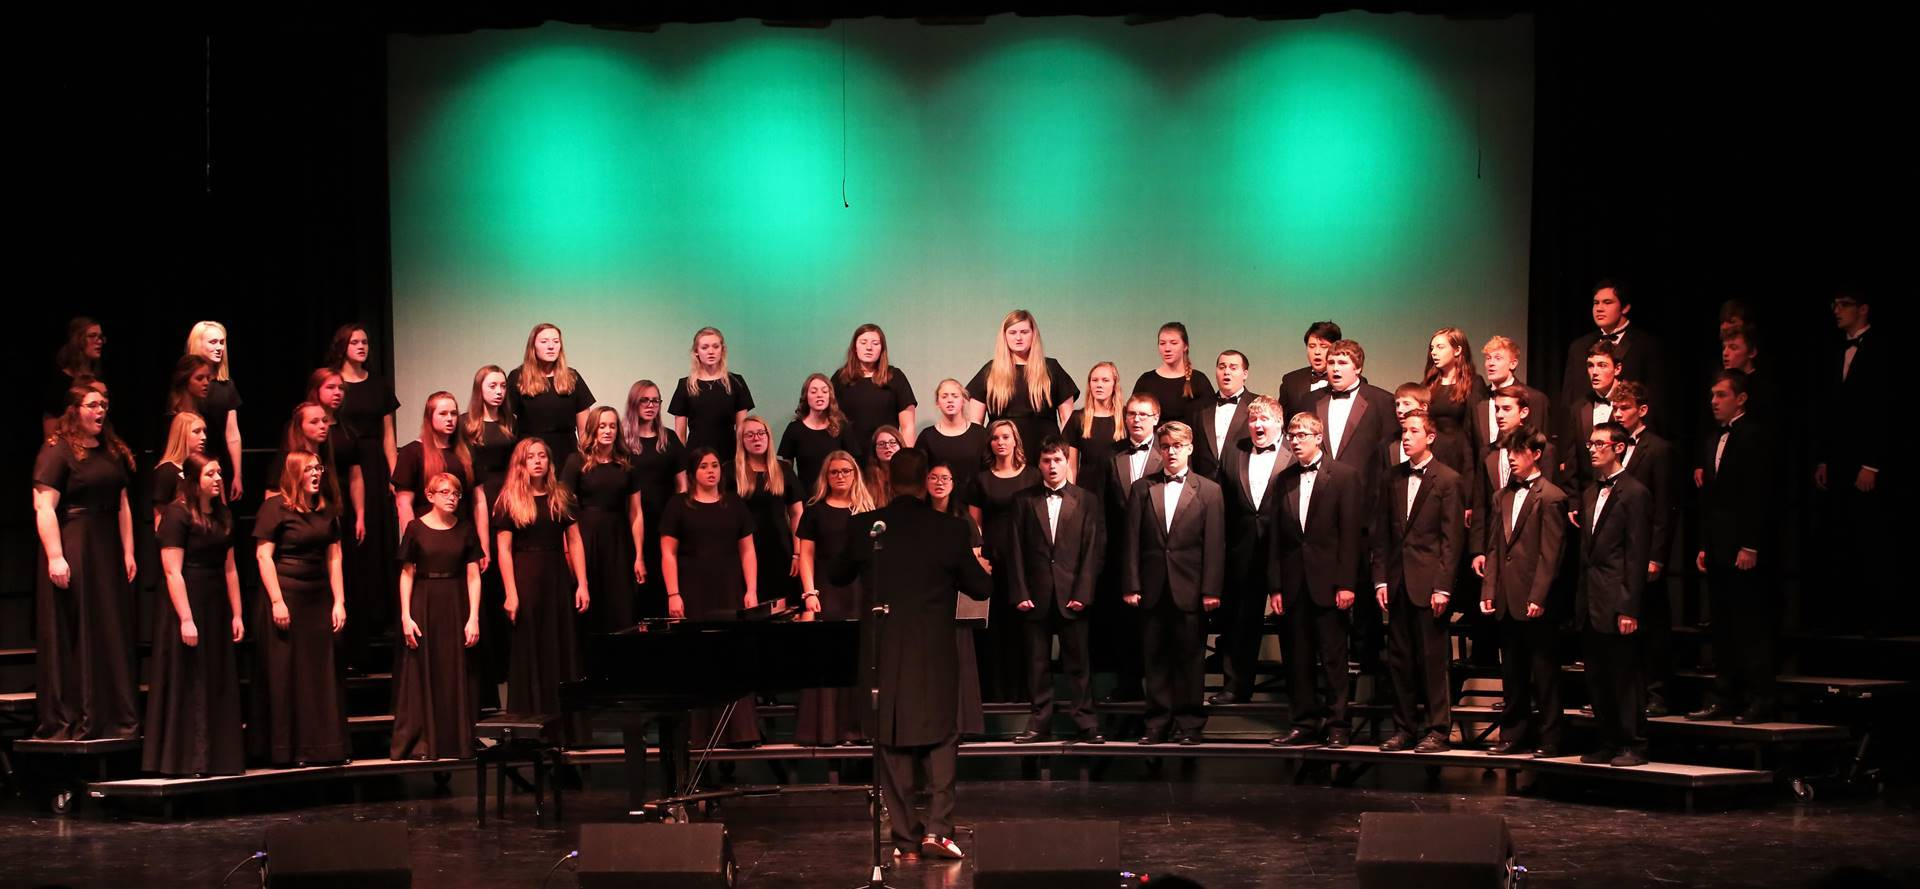 student choir on risers singing at a concert